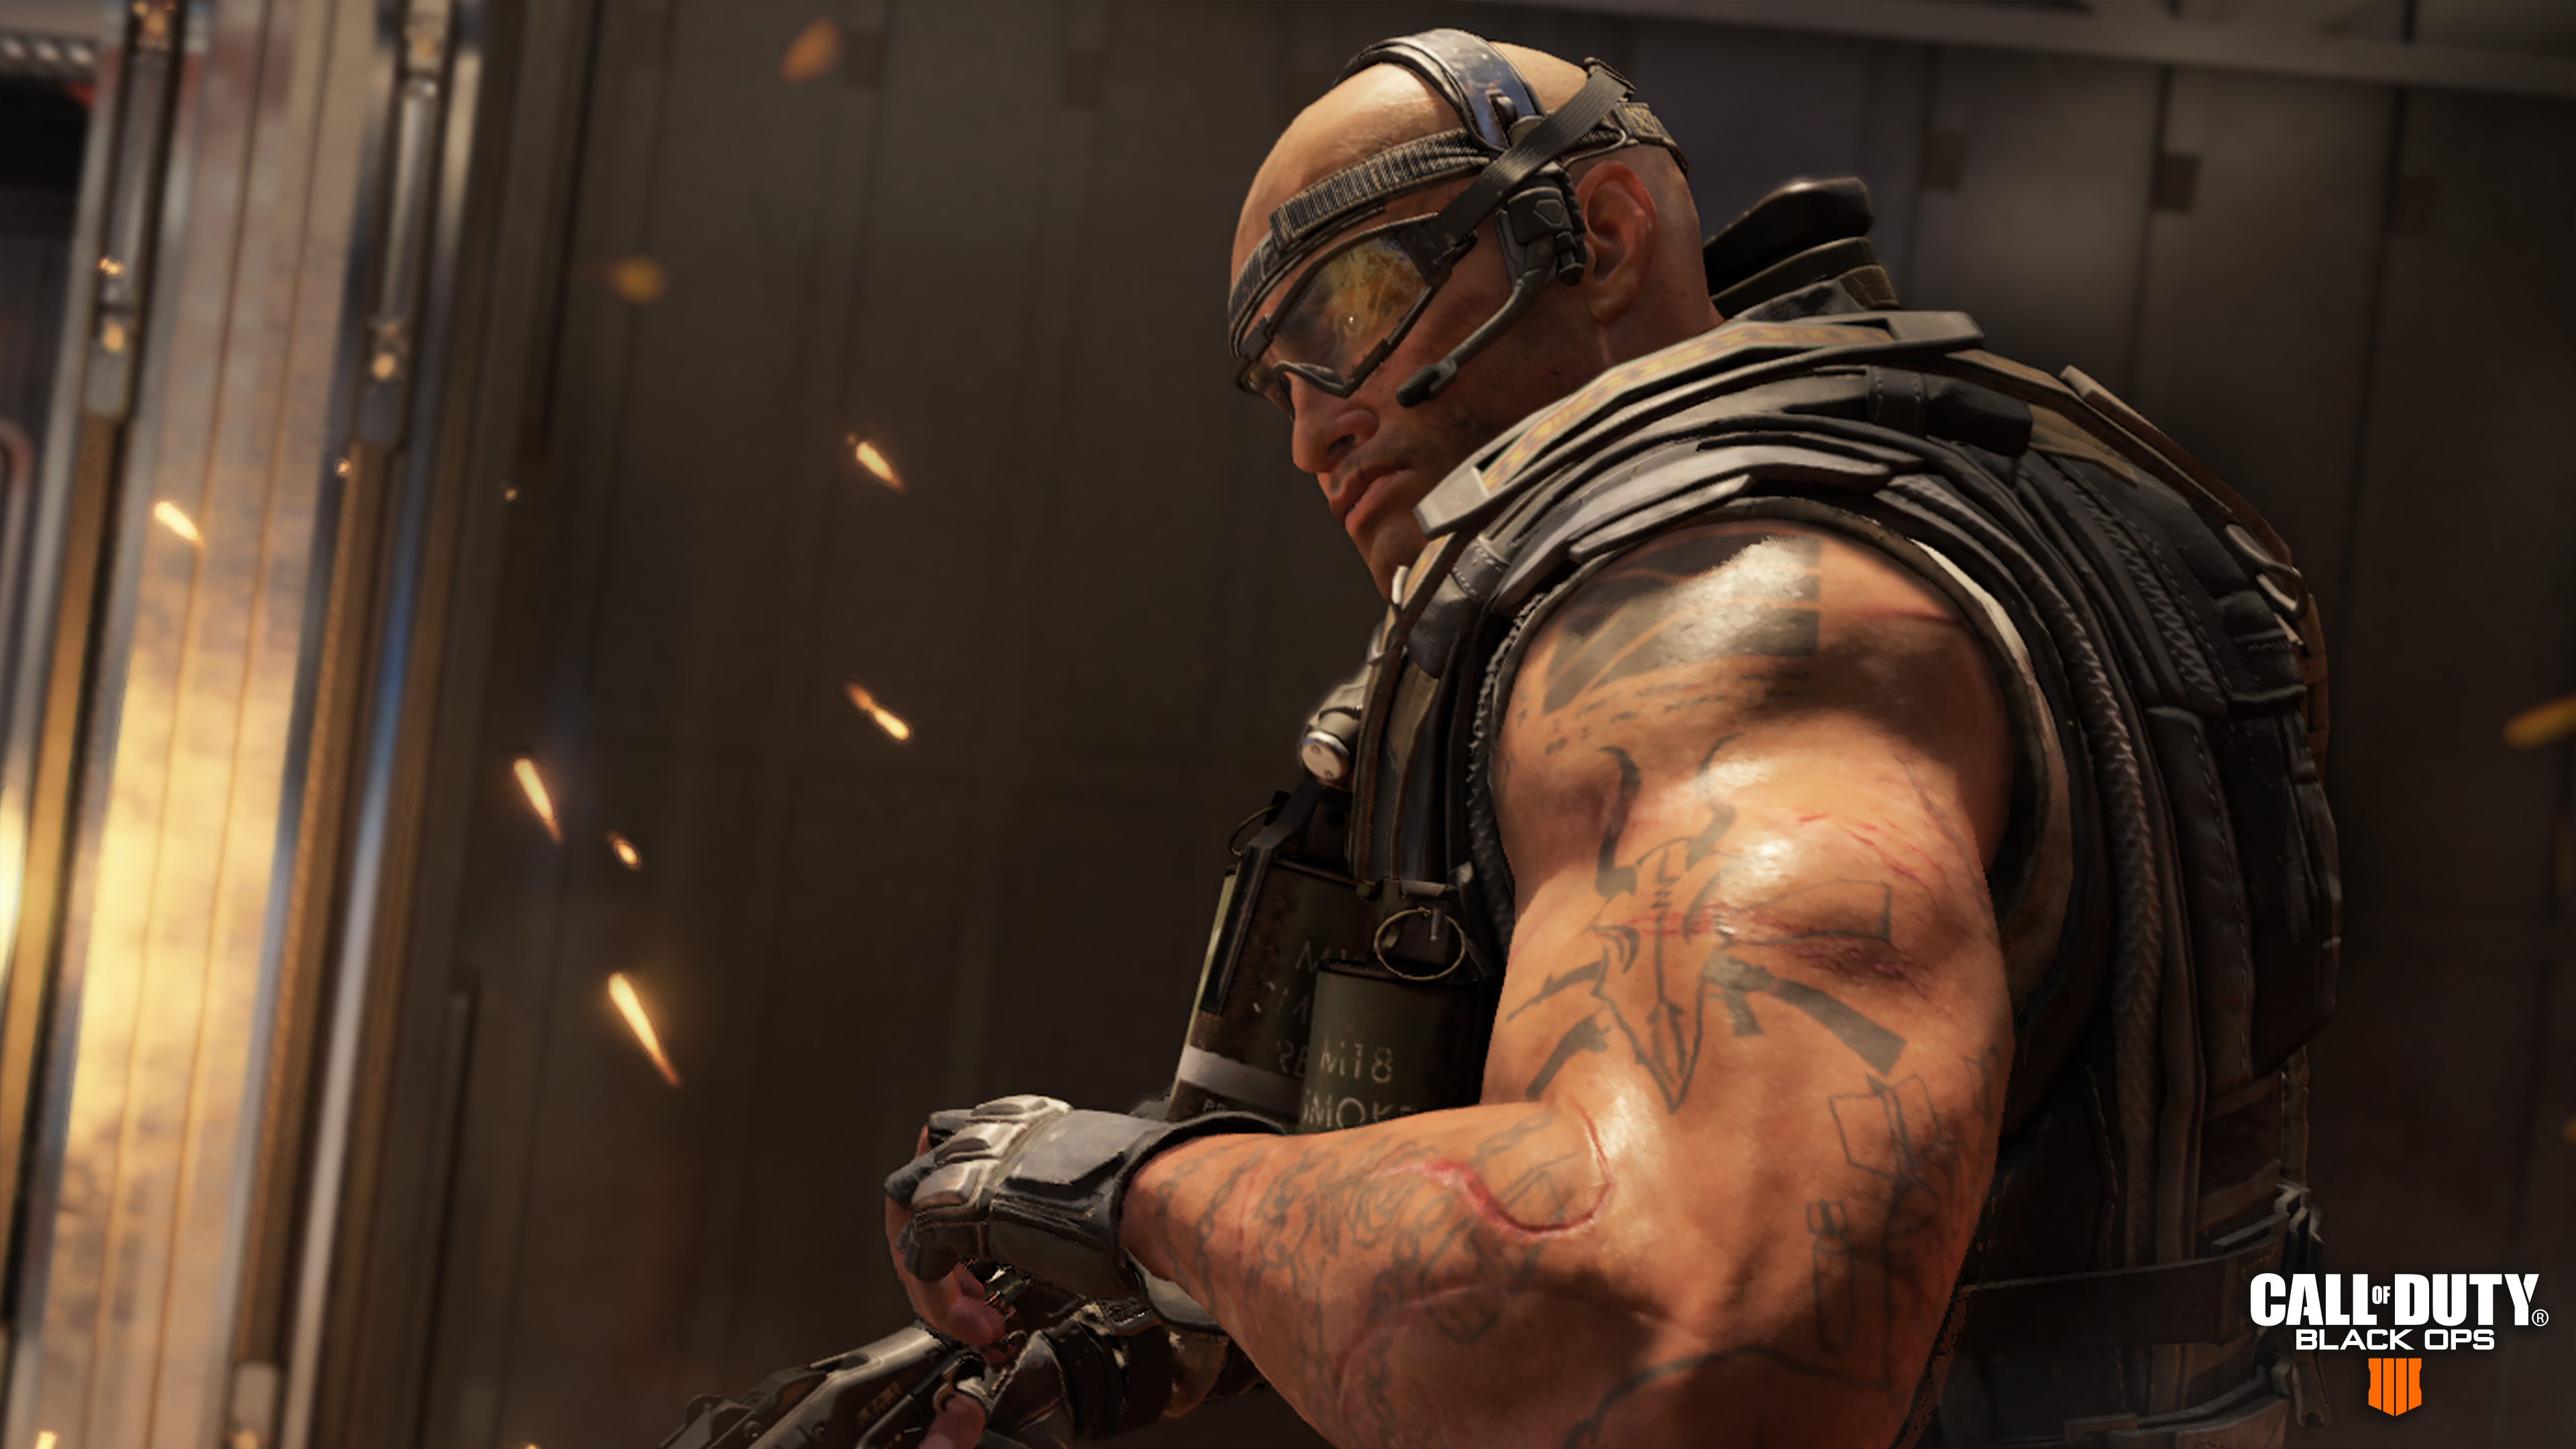 Watch The Call Of Duty: Black Ops IIII Reveal Here At 6PM